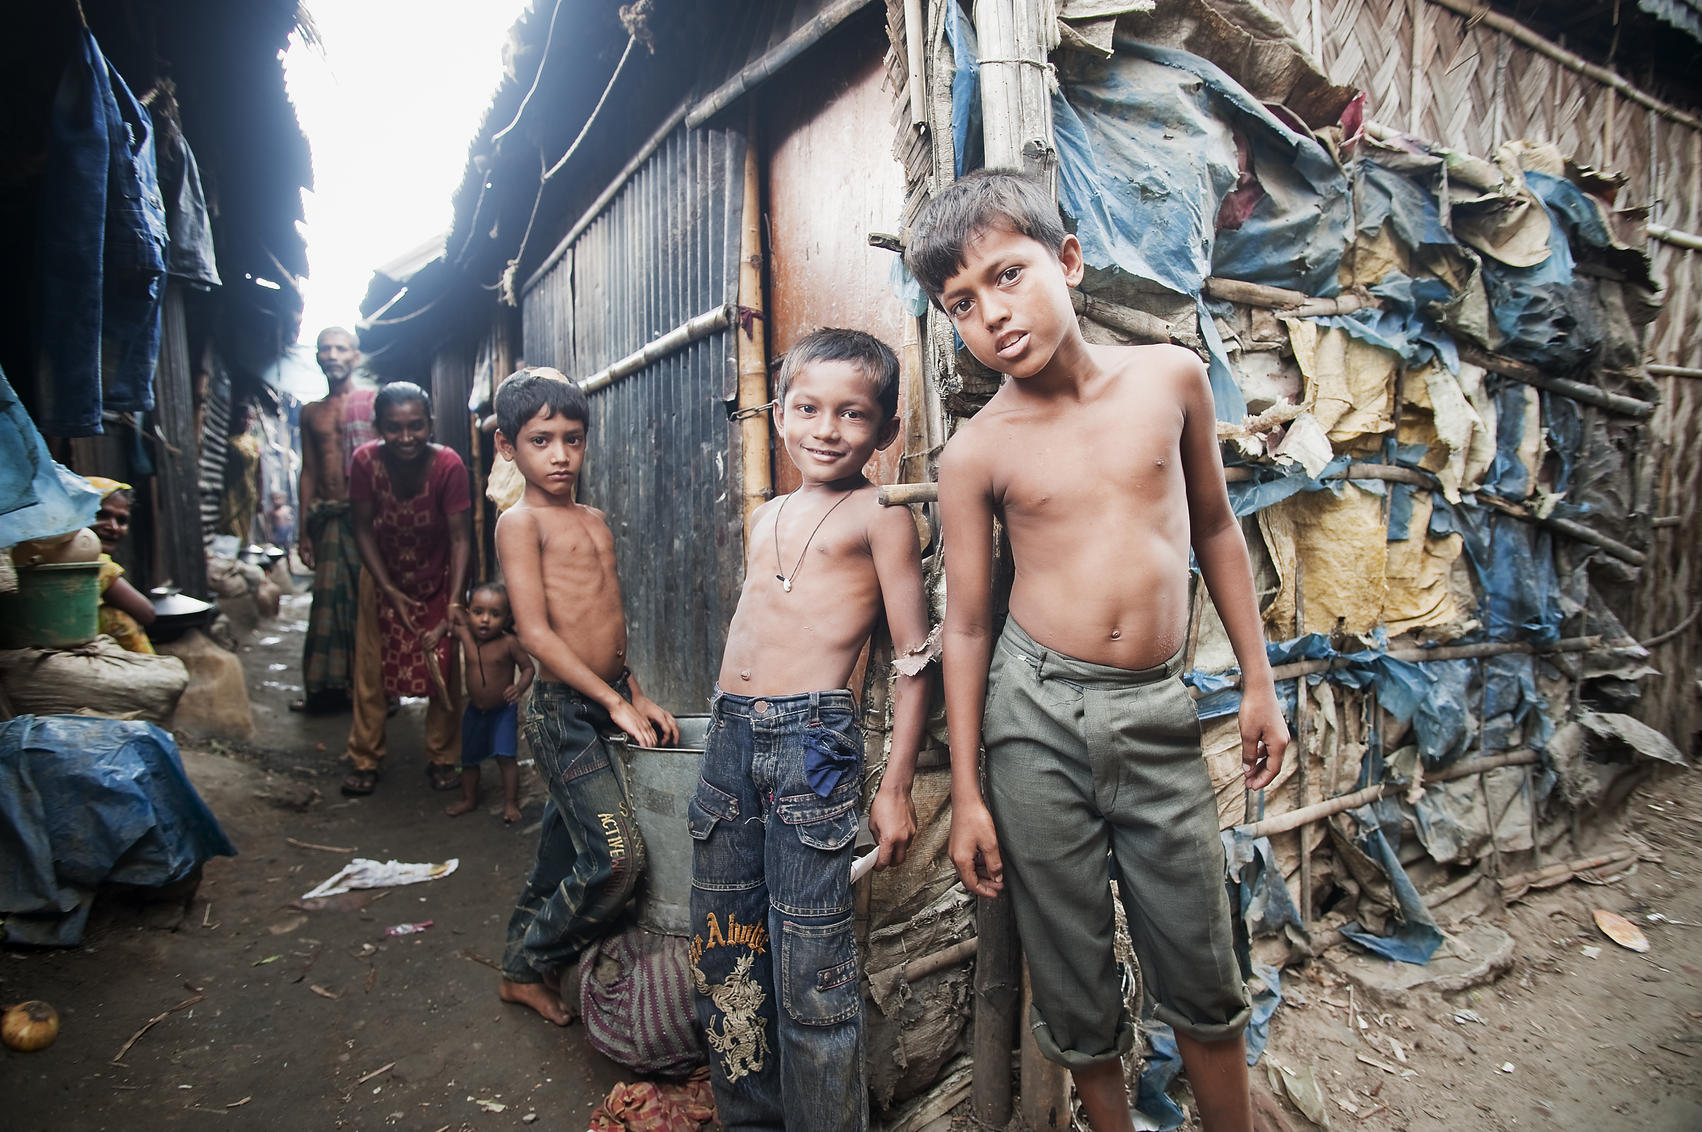 Children in Kallyanpur, one of the urban slums in Dhaka, Bangladesh.jpg